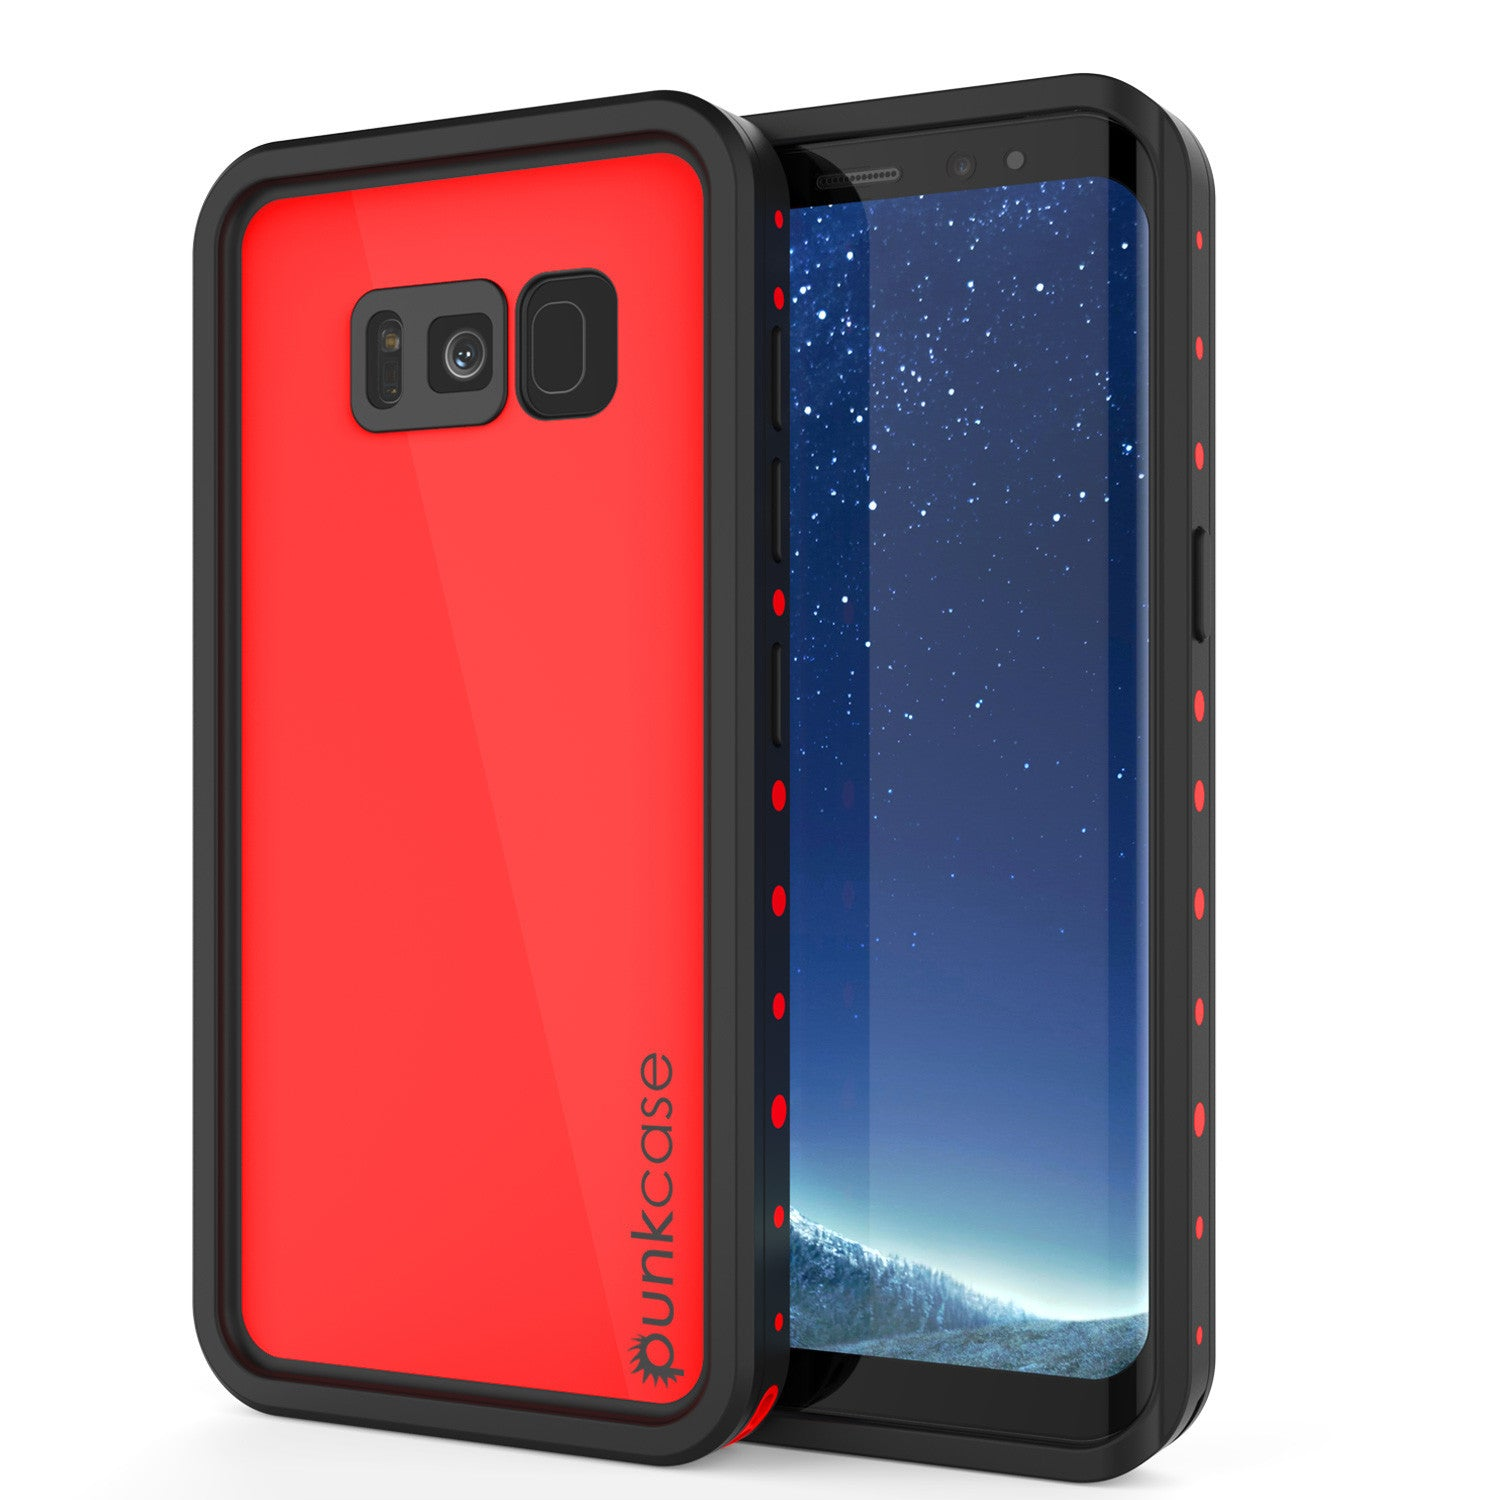 Galaxy S8 Plus Waterproof Case PunkCase StudStar Red Thin 6.6ft Underwater IP68 Shock/Snow Proof